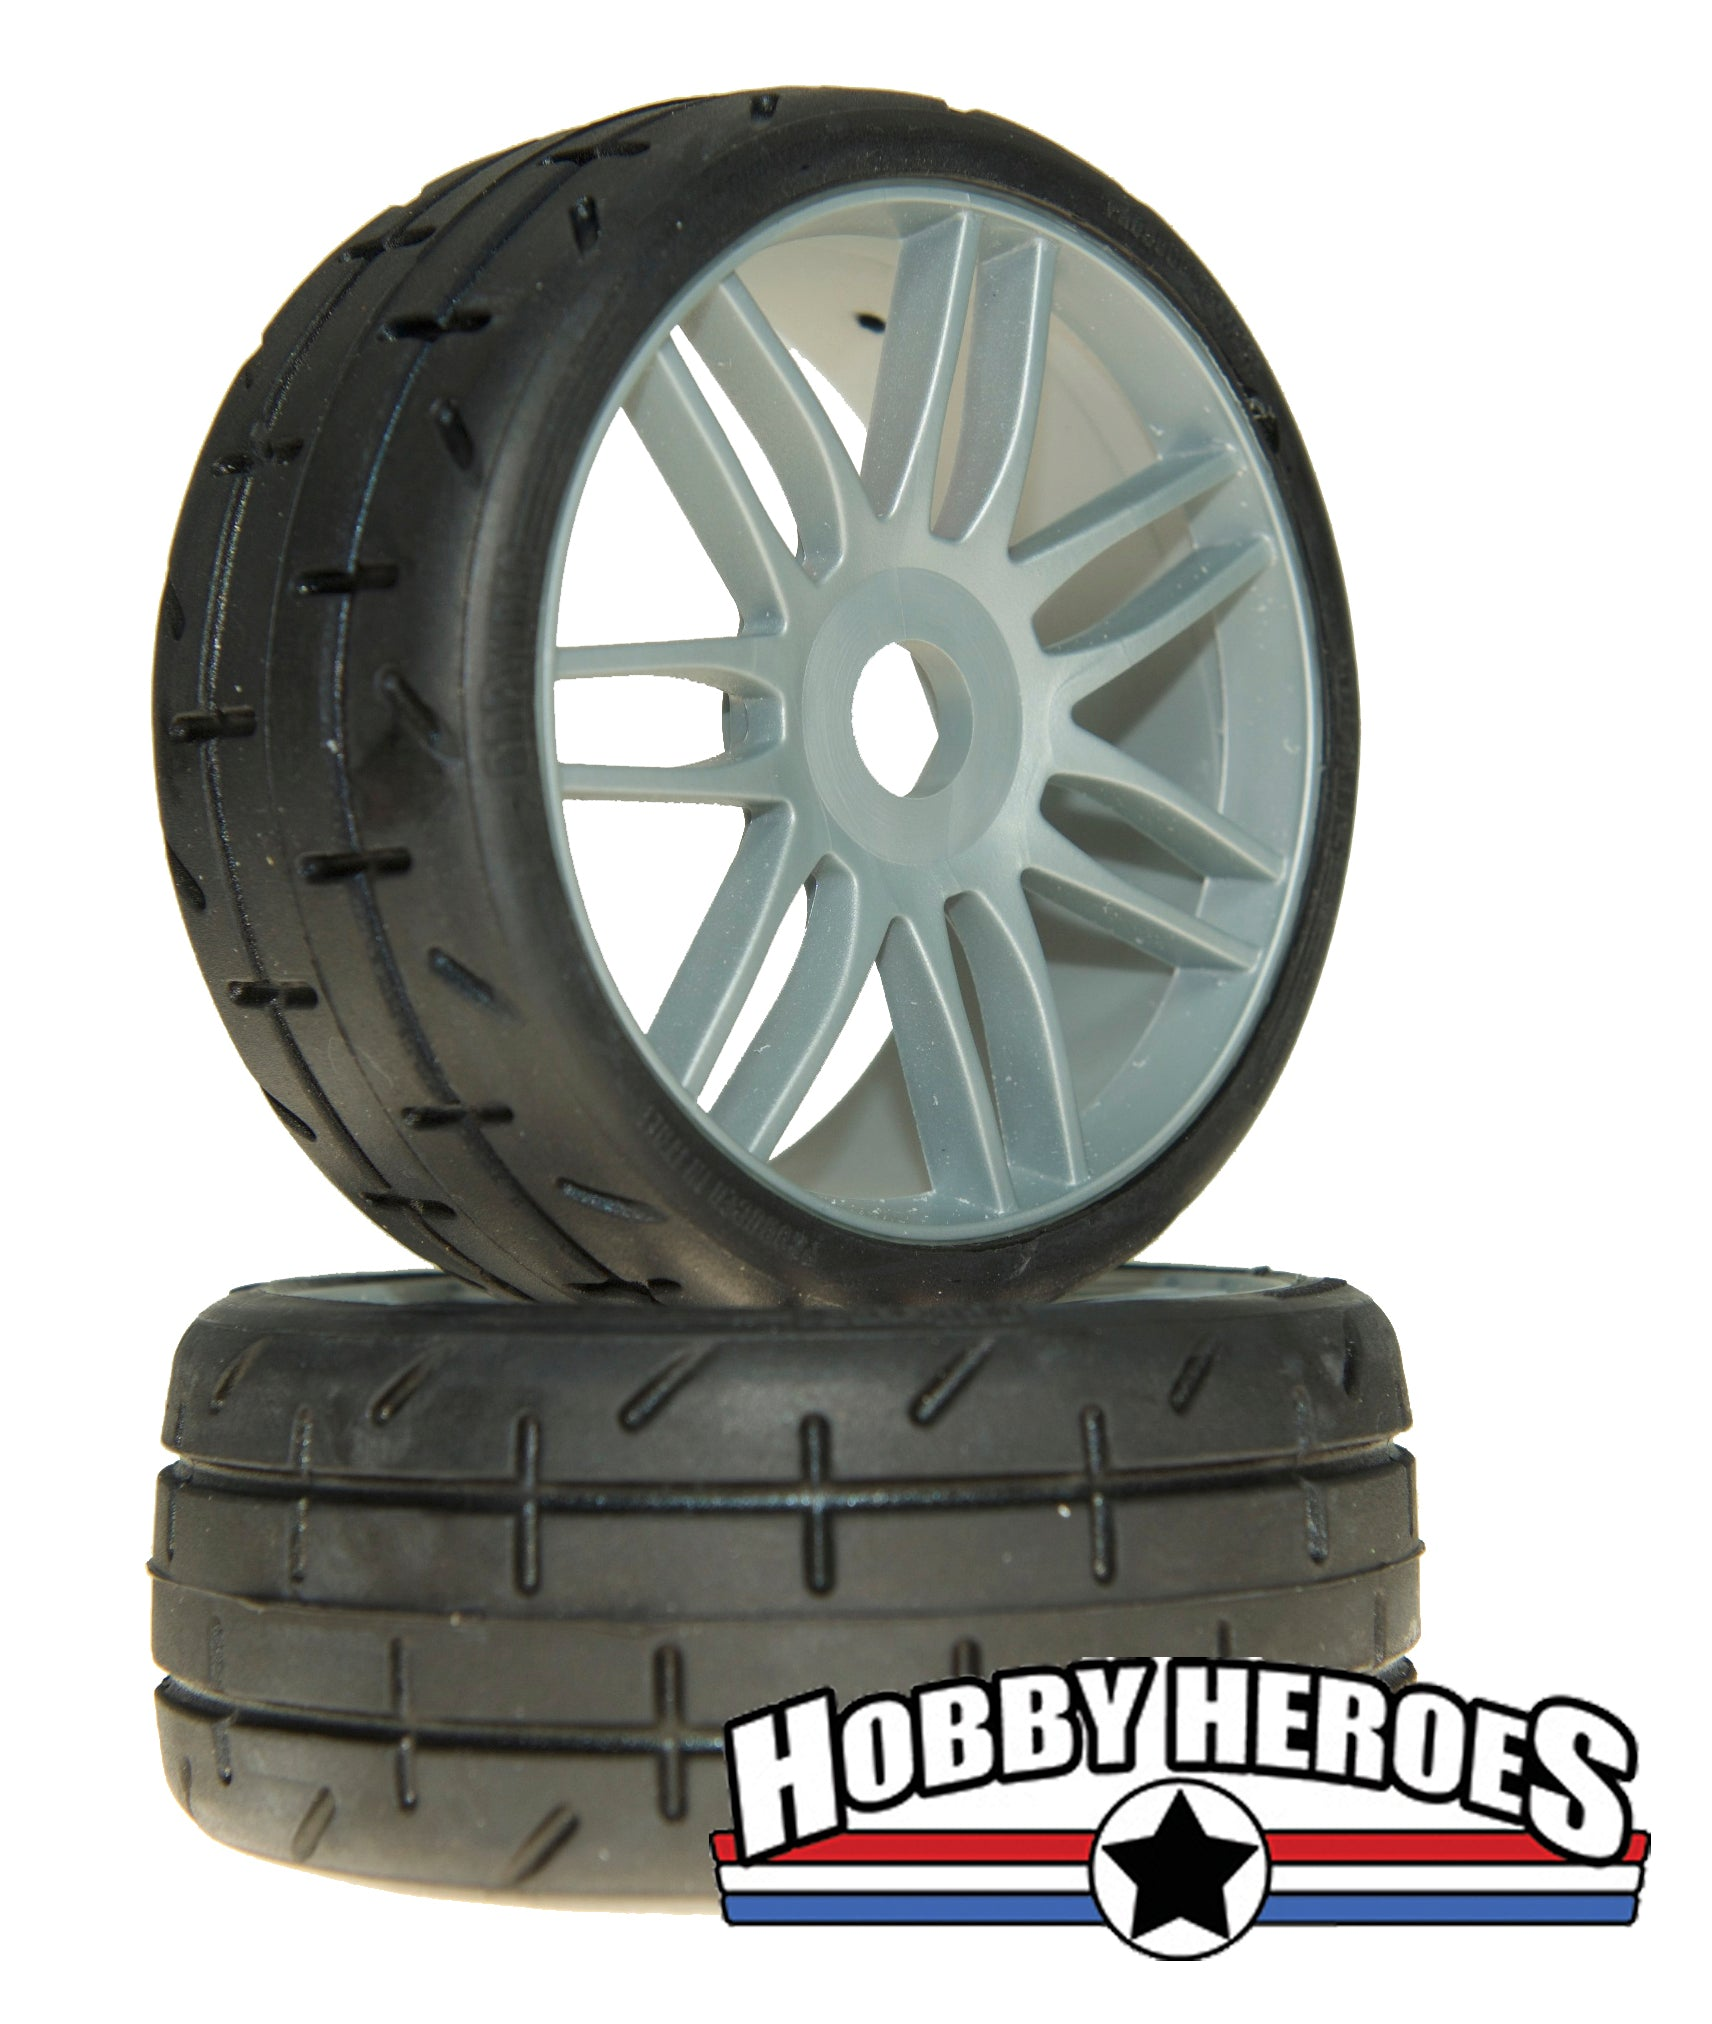 GRP GTK01-S5 1:8 GT Treaded S5 Medium Silver Spoked Belted Rubber Tires